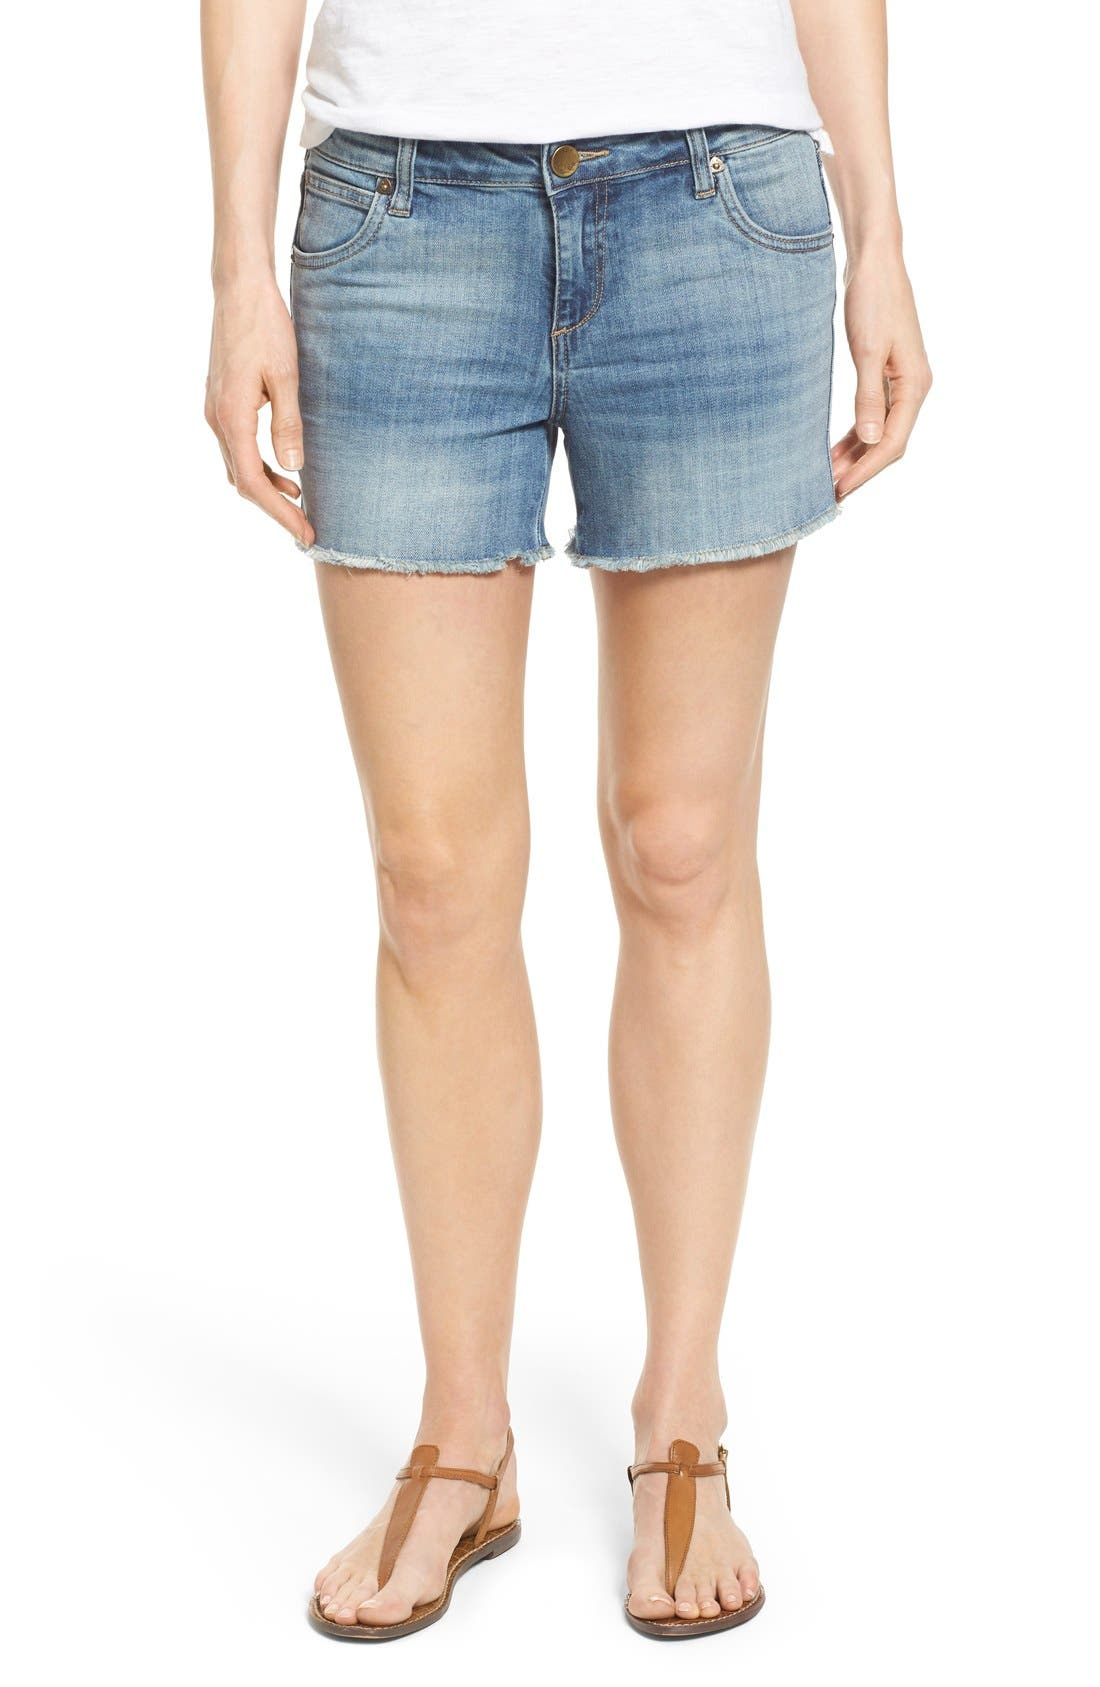 Alternate Image 1 Selected - KUT from the Kloth 'Gidget' Denim Cutoff Shorts